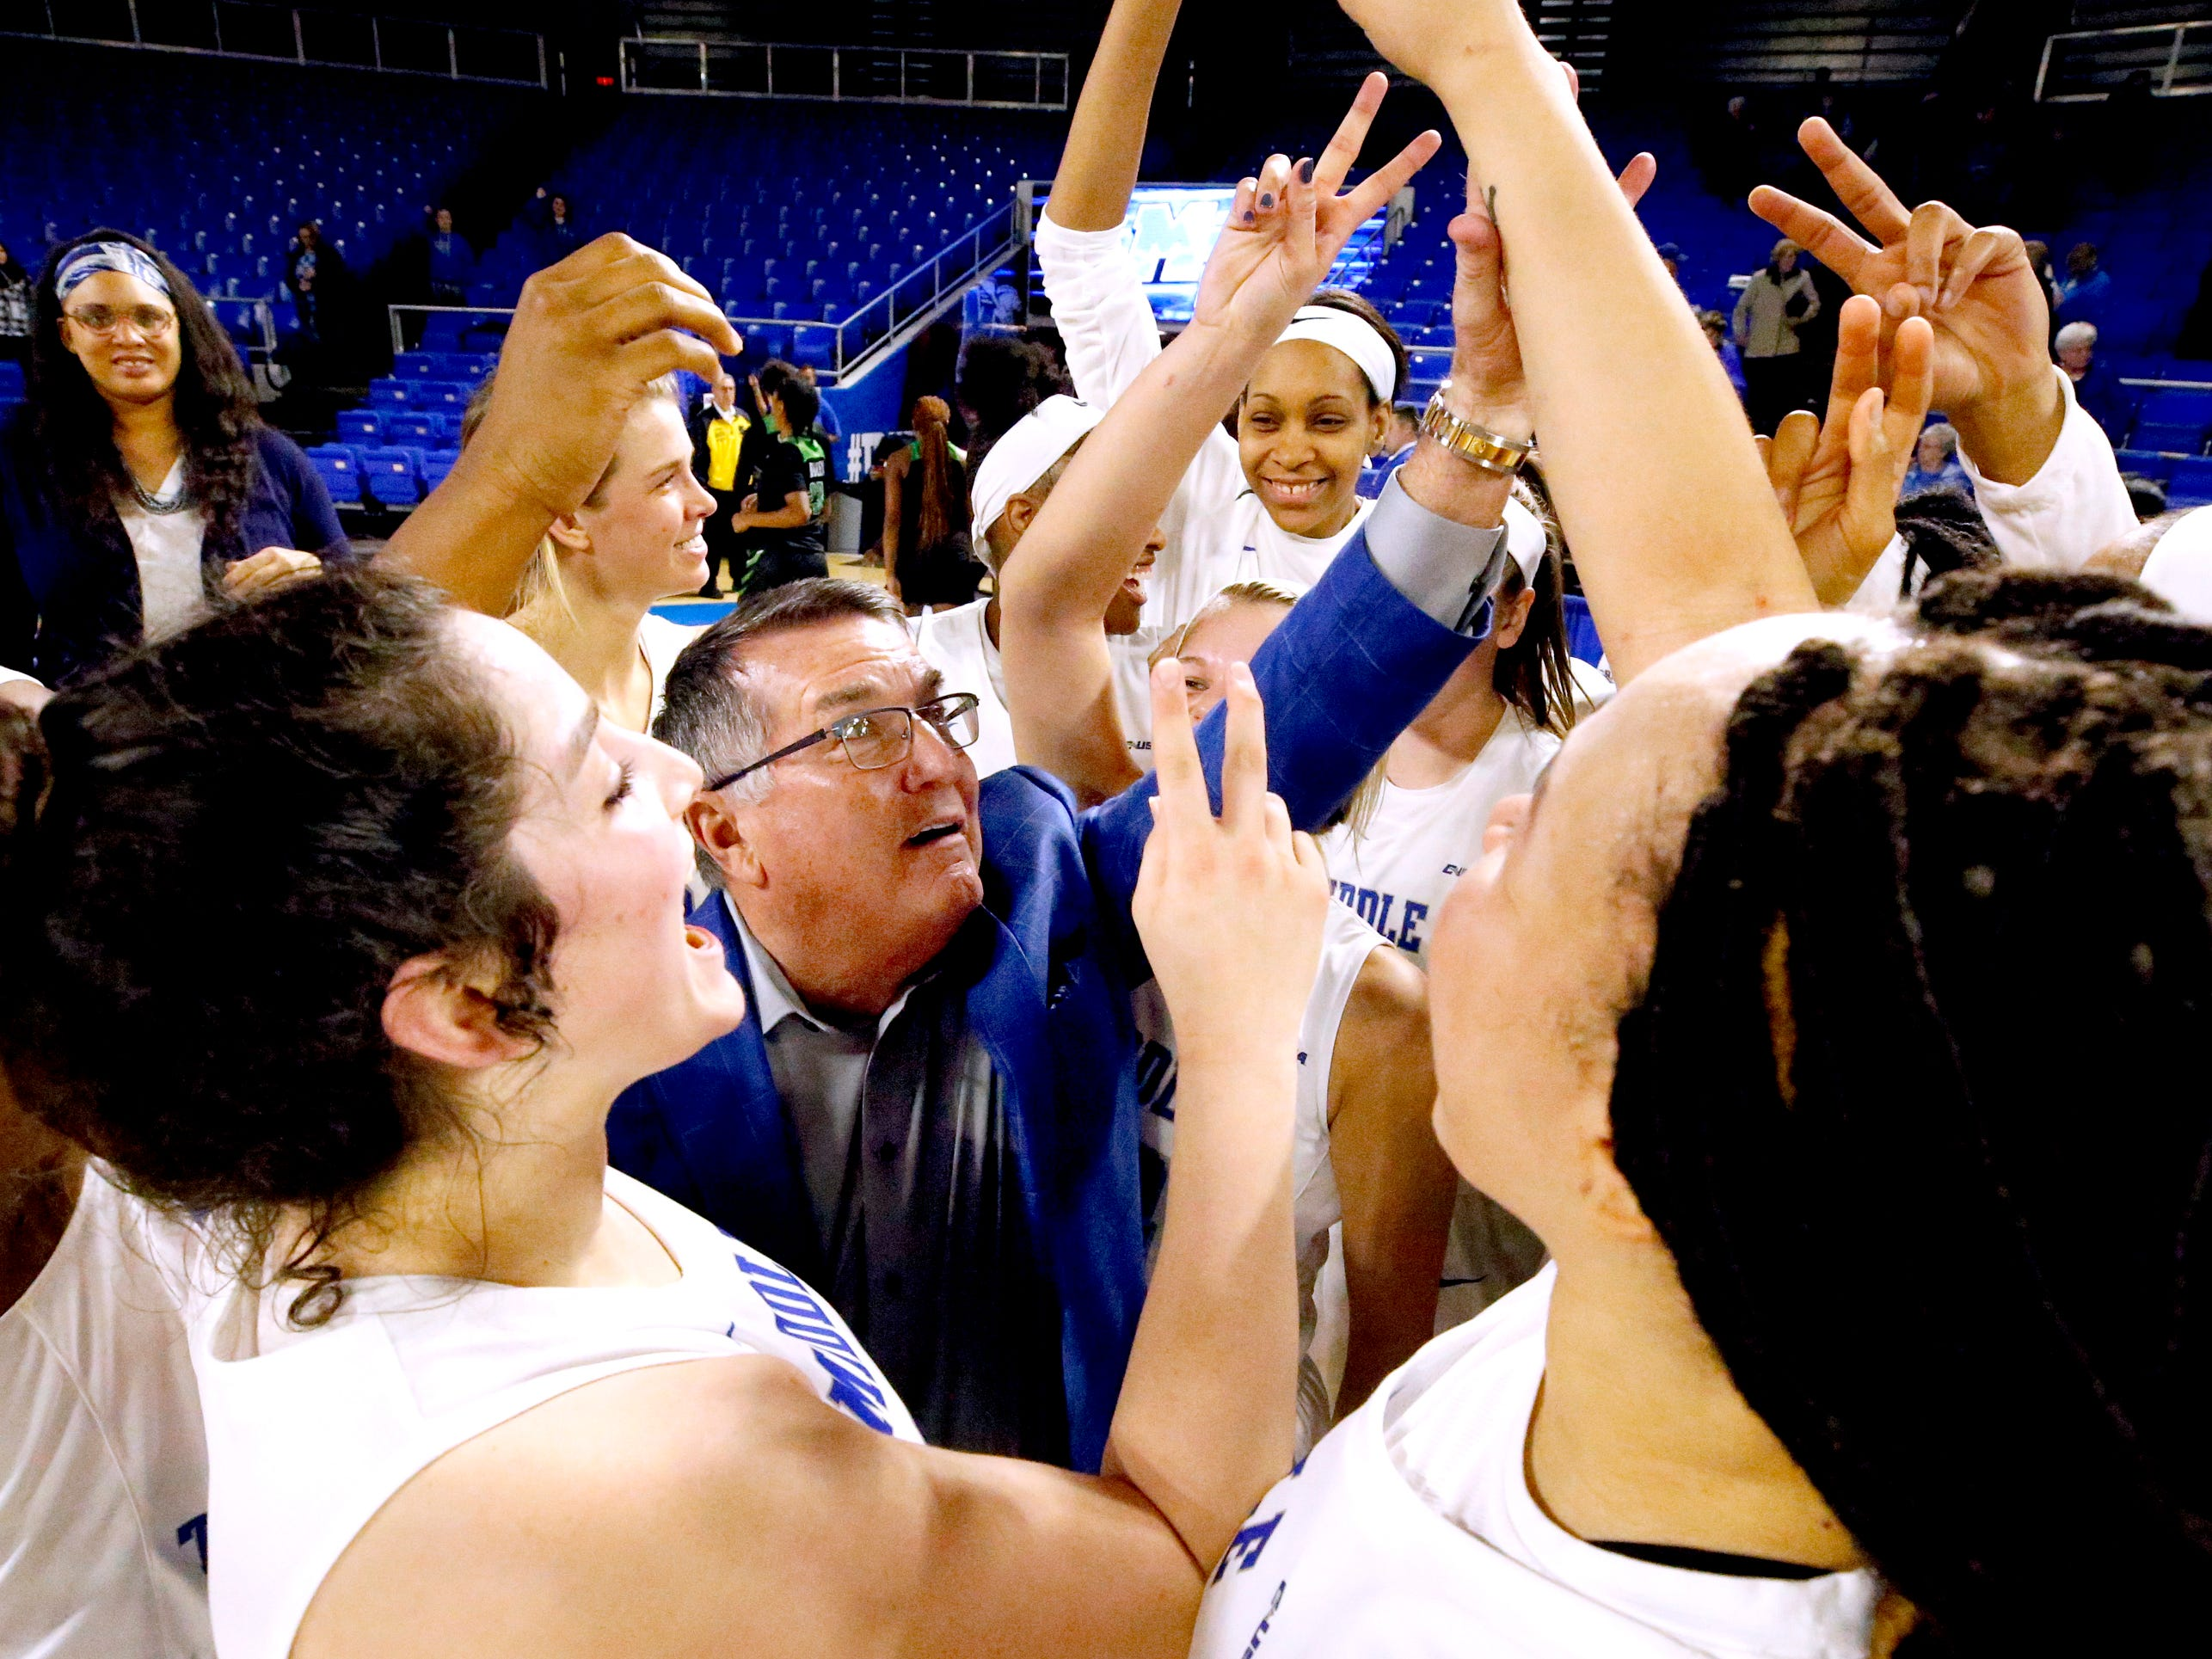 MTSU's head coach Rick Insell cheers with his team as after MTSU beat North Texas 61-46 and making him the all-time winningest coach in MTSU basketball history on Saturday Jan. 26, 2019.